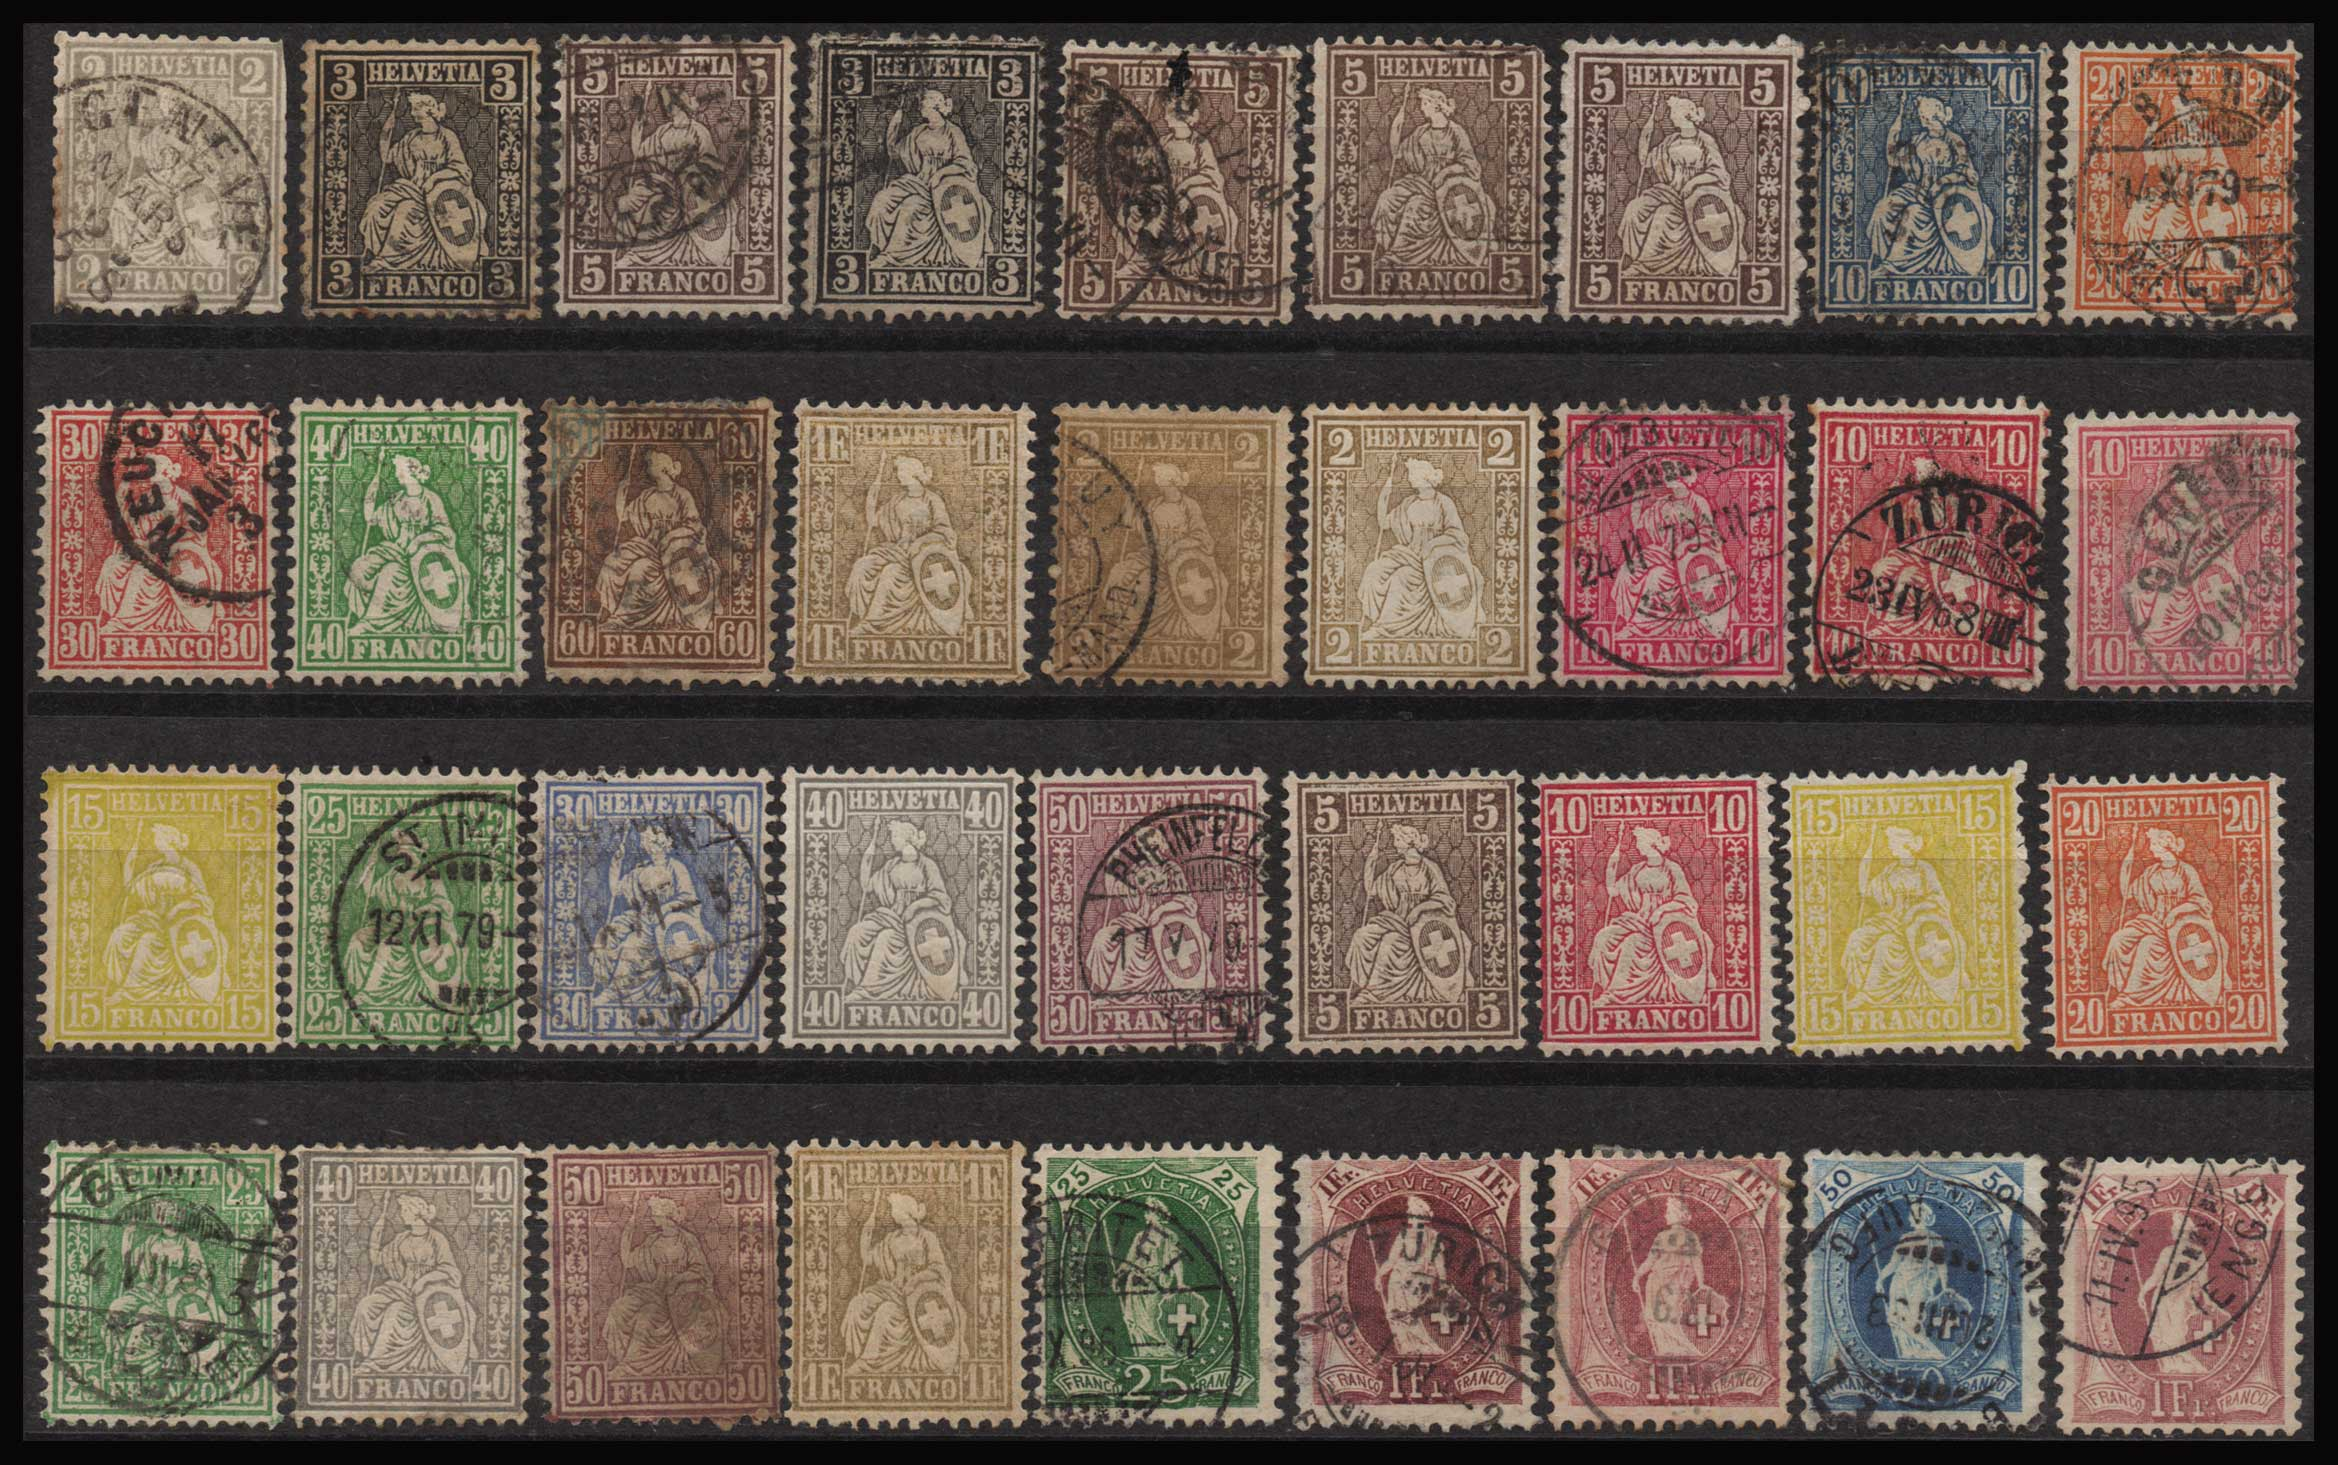 Lot 2131 - - COLLECTIONS collections -  Athens Auctions Public Auction 92 General Stamp Sale